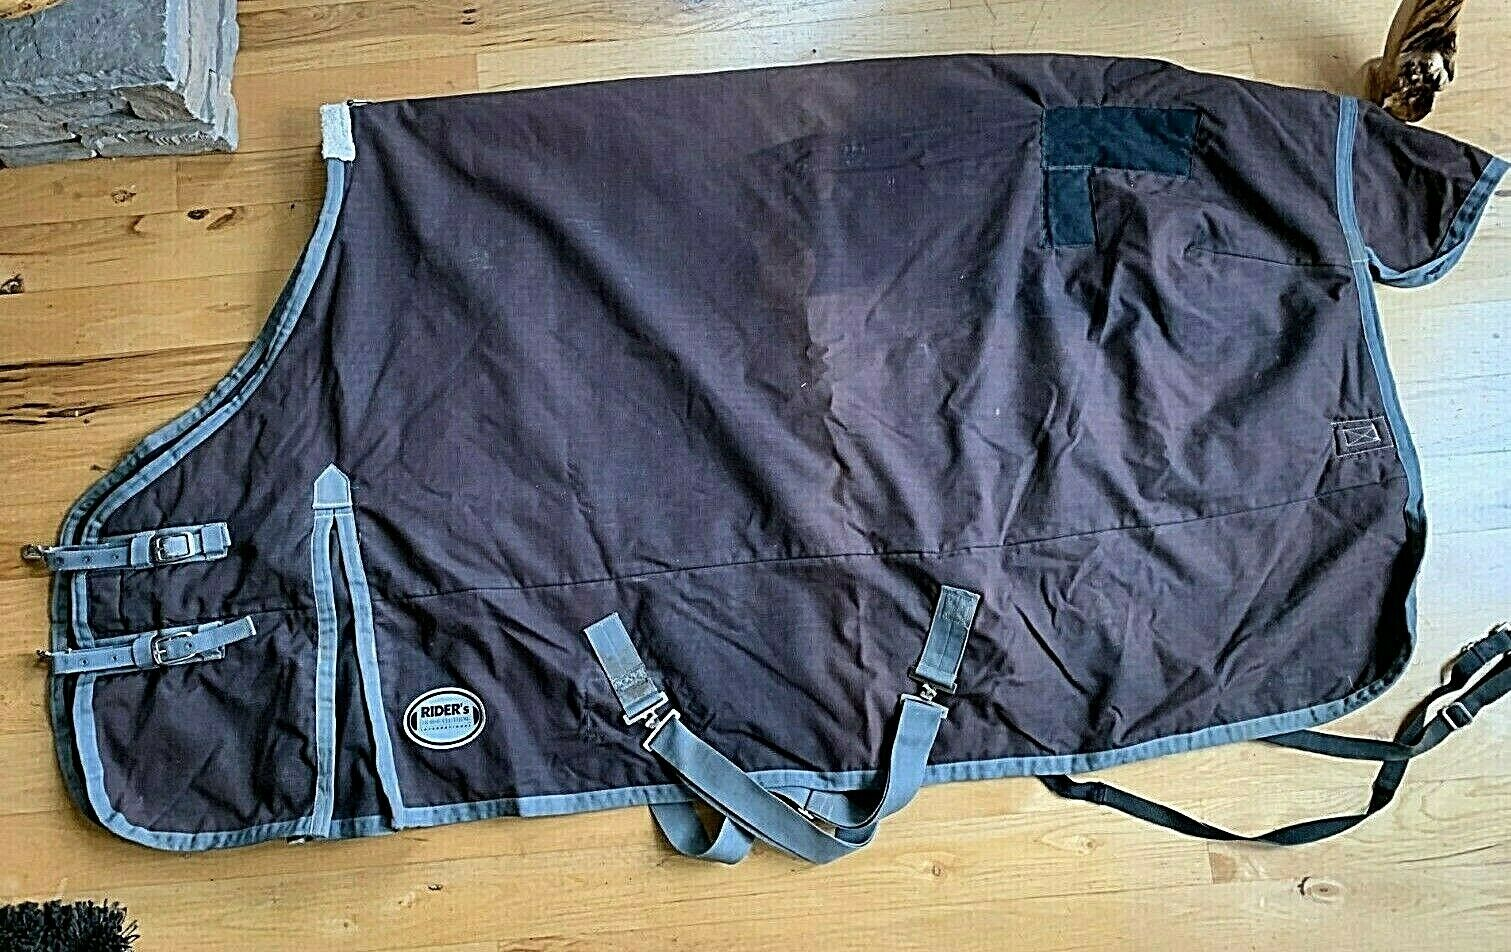 72 Riders Internazionale Dover Waterproof cavallo Blanket Turnout grigio HB95